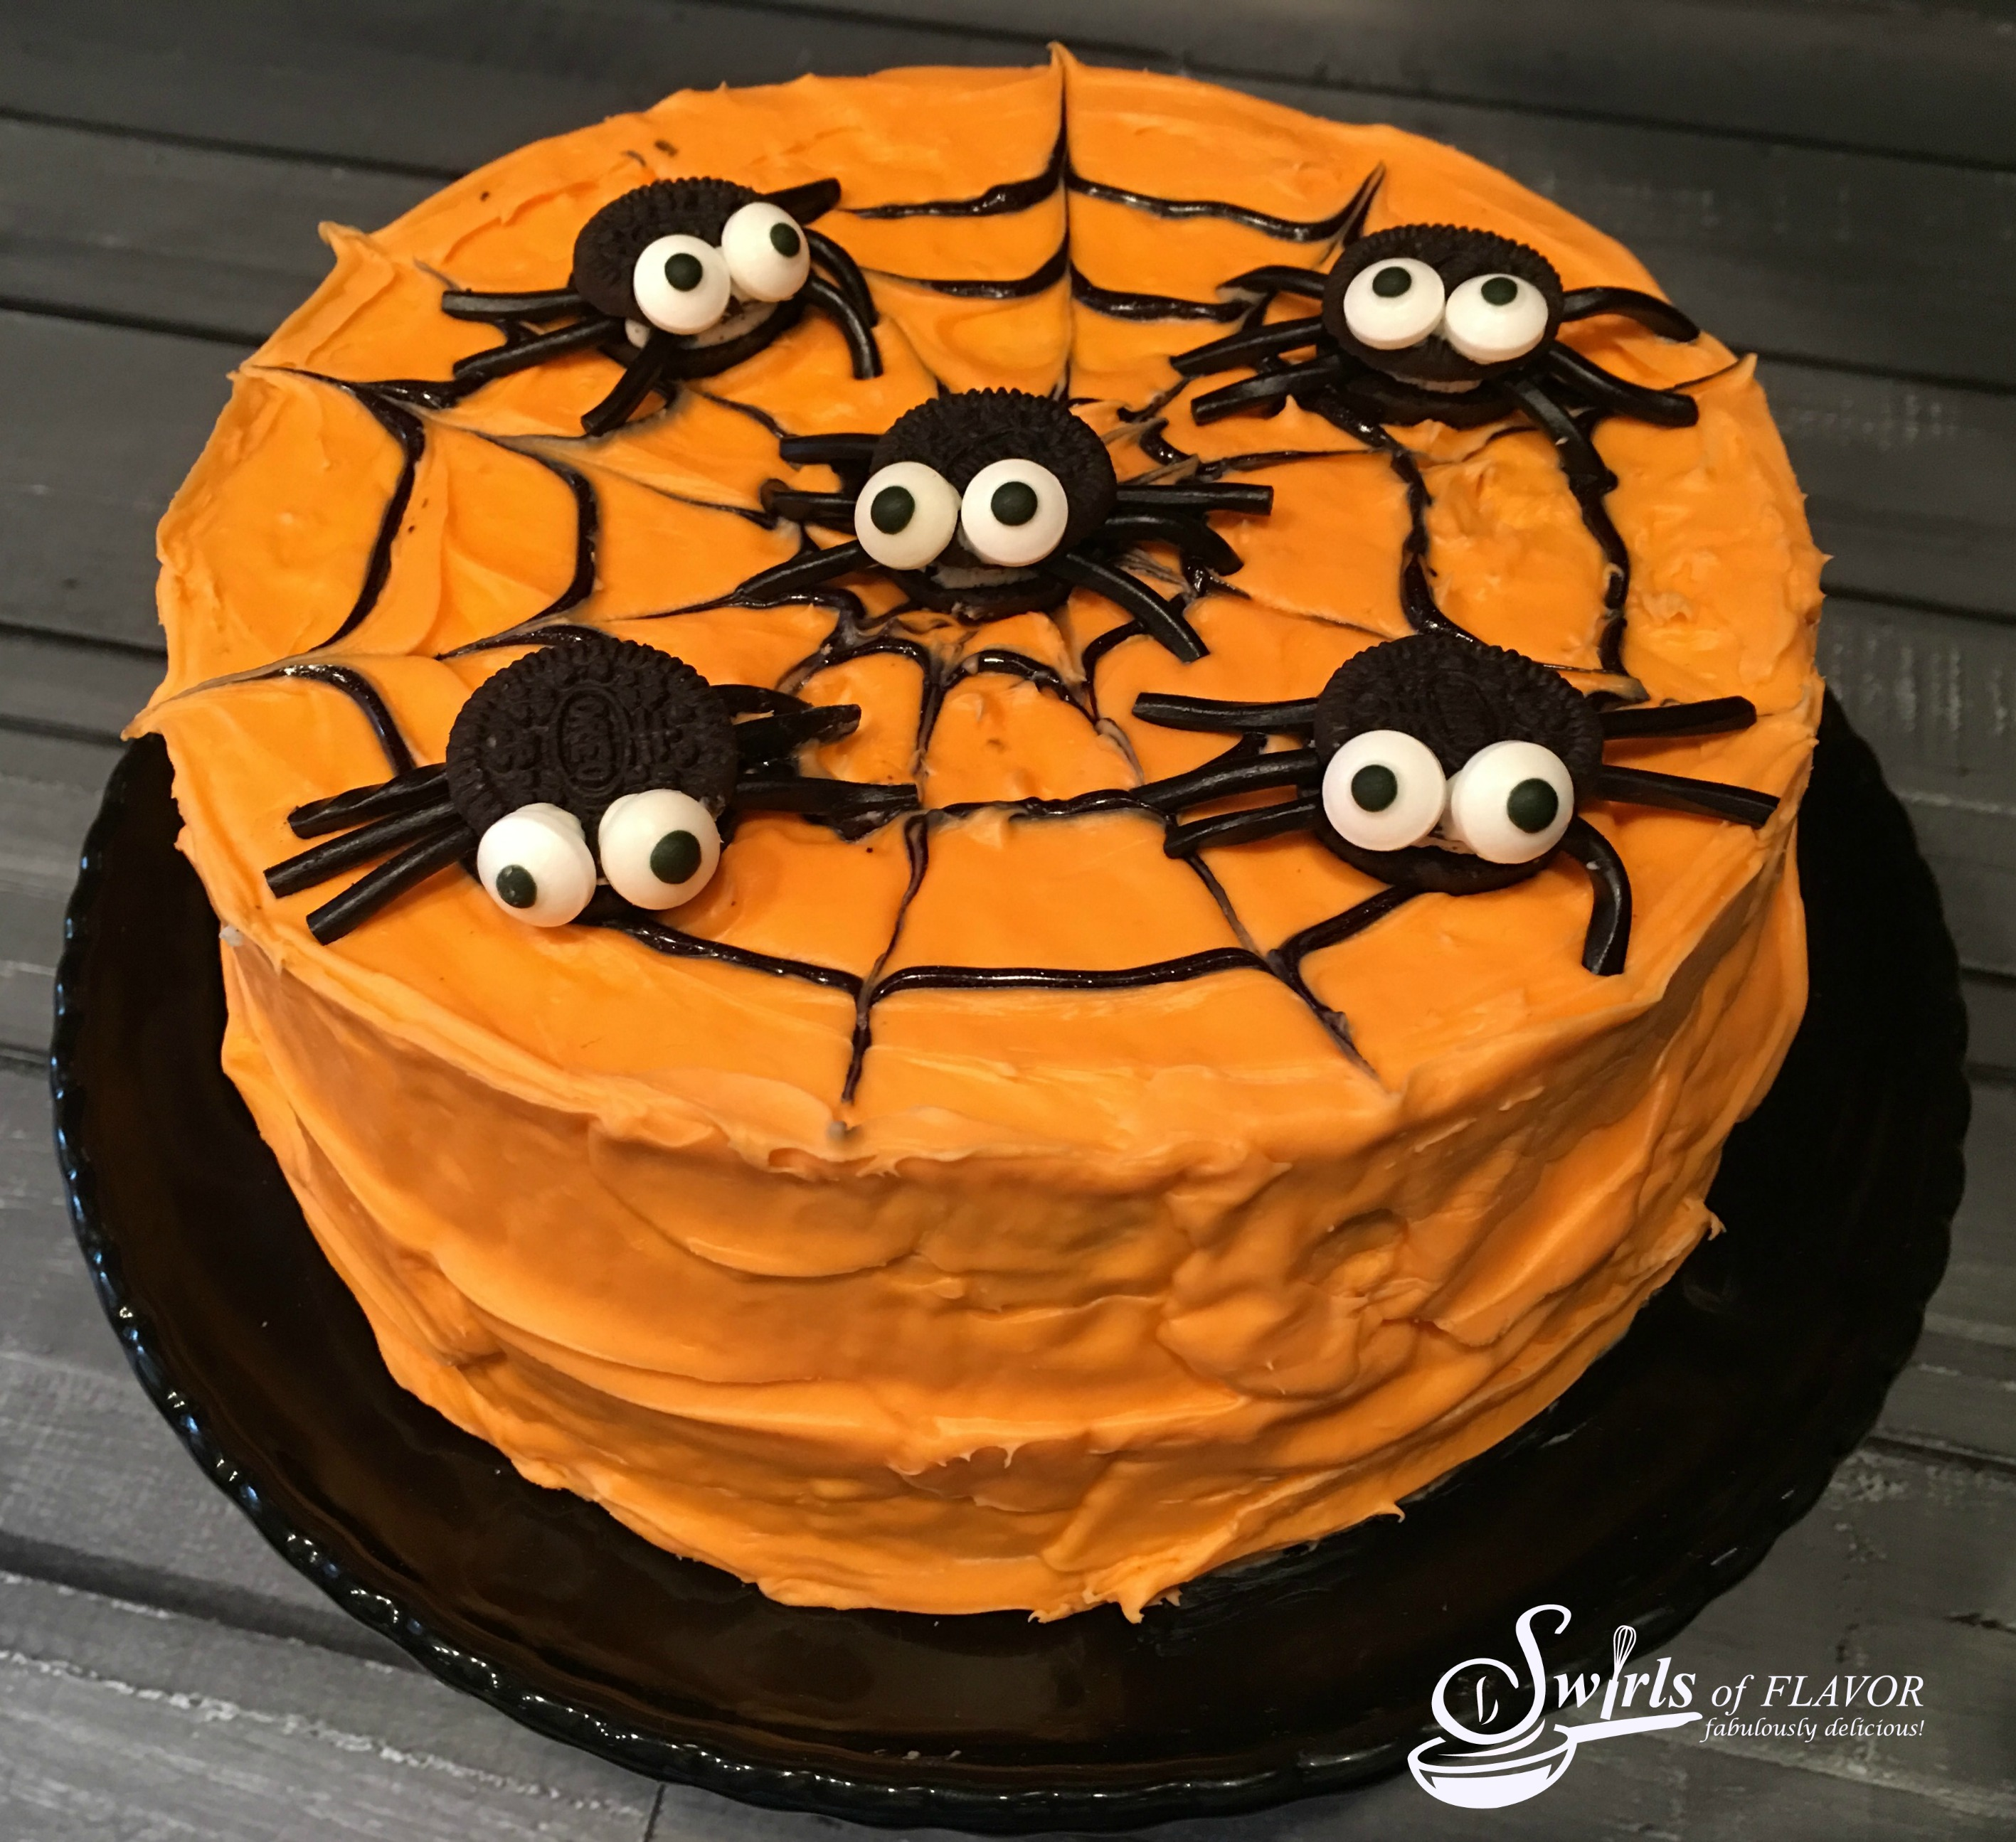 Cookie spiders on orange layer cake for Halloween